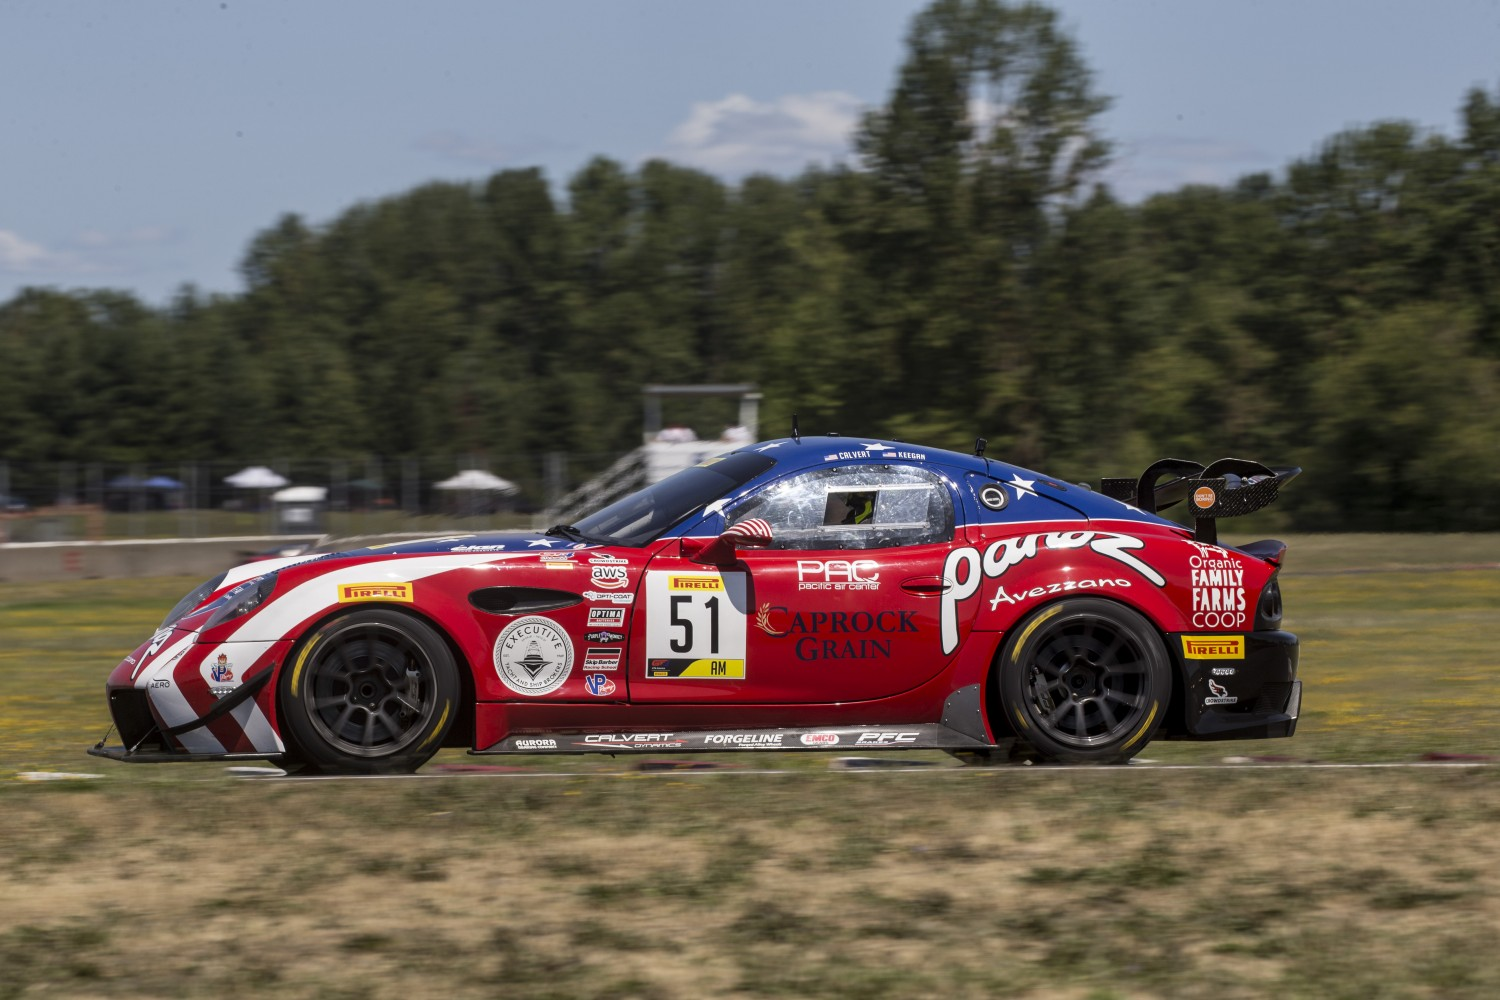 #51 Panoz Avezzano GT of Preston Calvert and Matthew Keegan, Rose Cup Races, Portland OR  | Brian Cleary/SRO